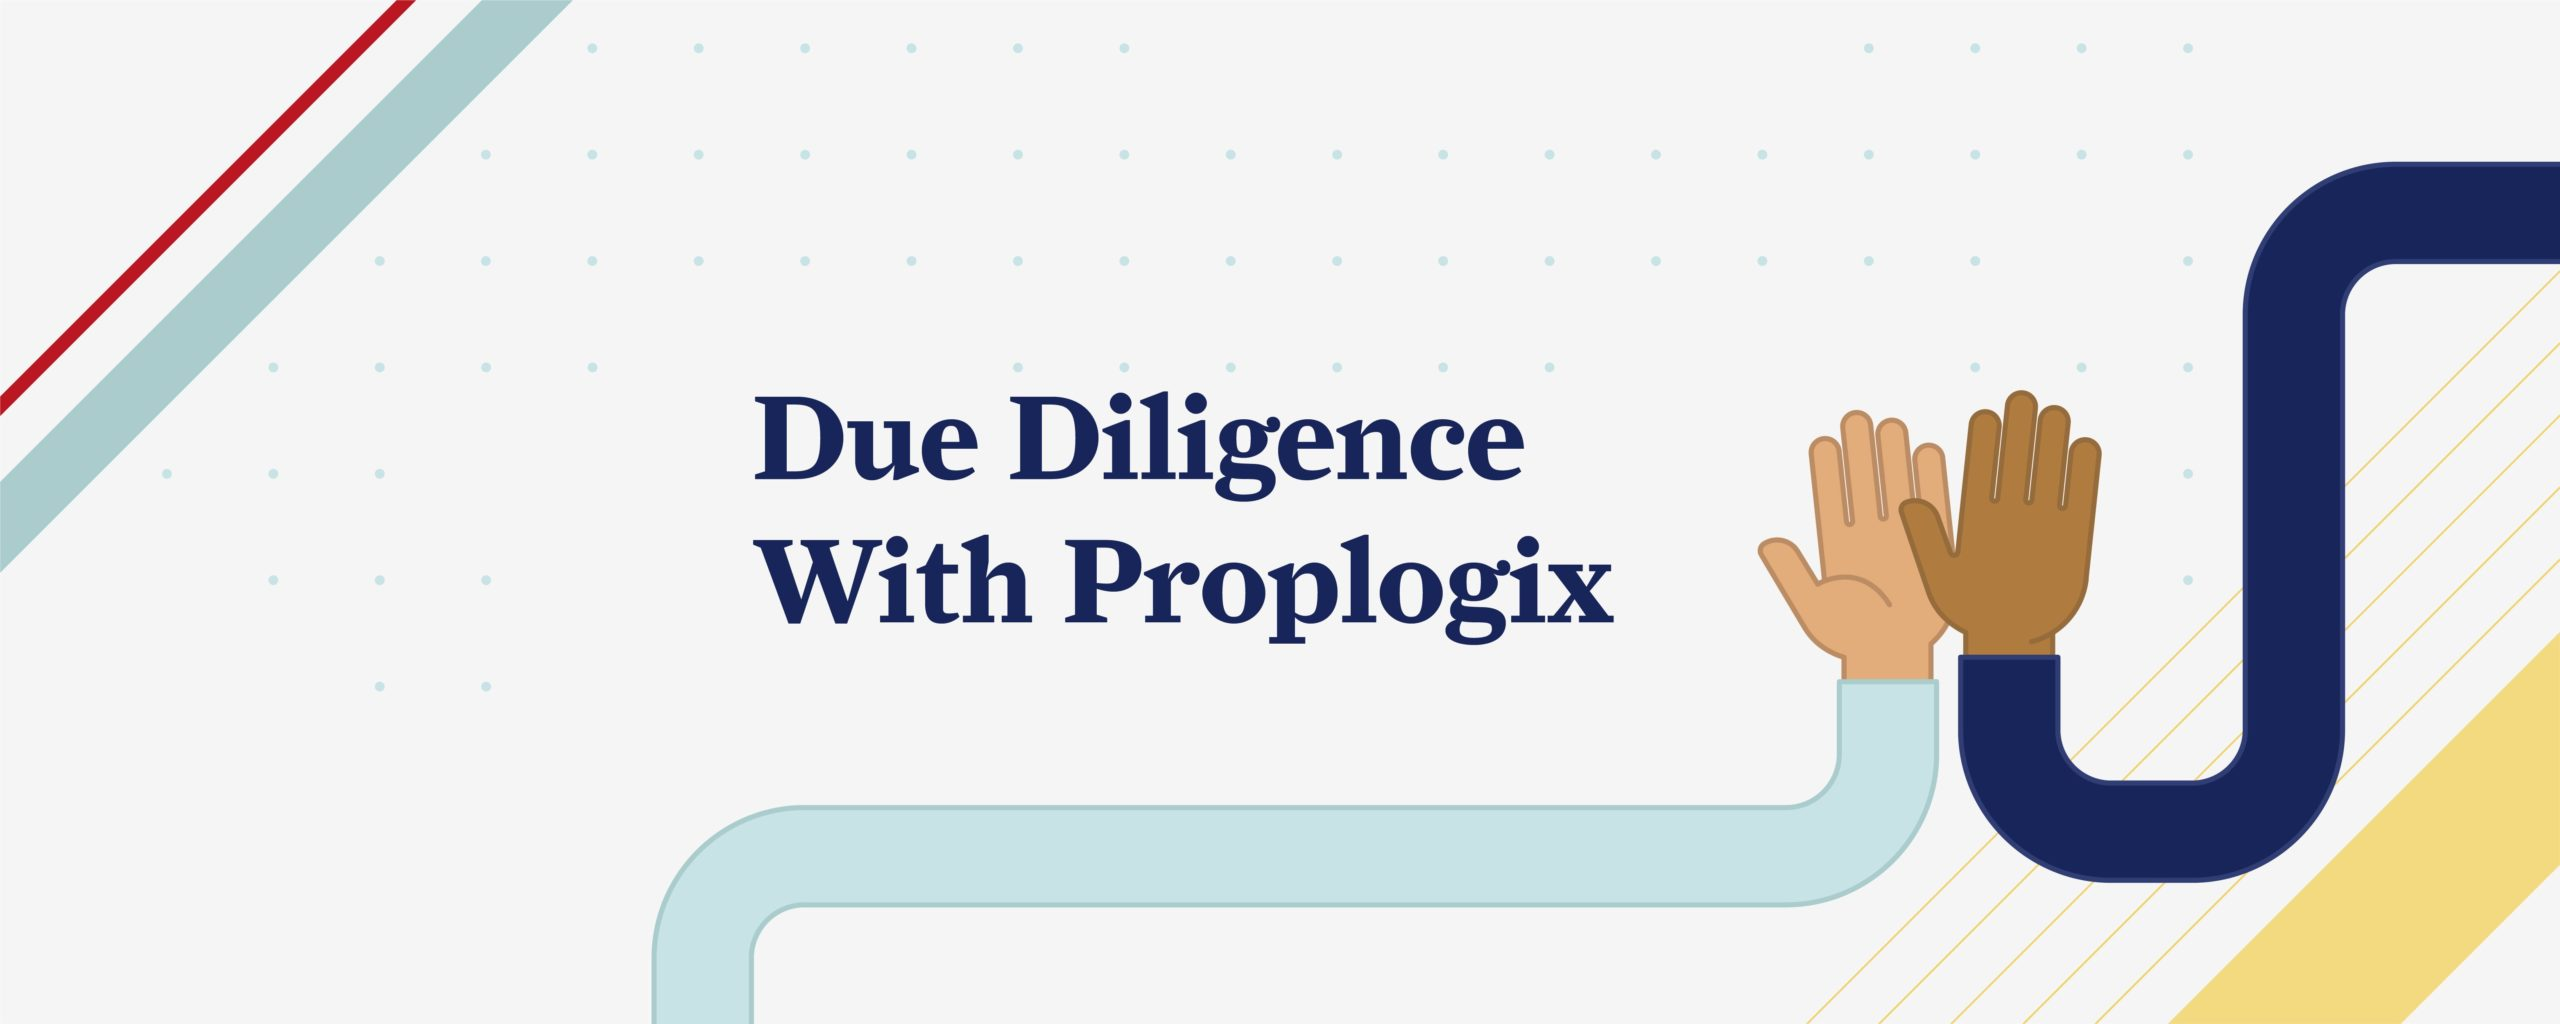 Due Diligence with Proplogix